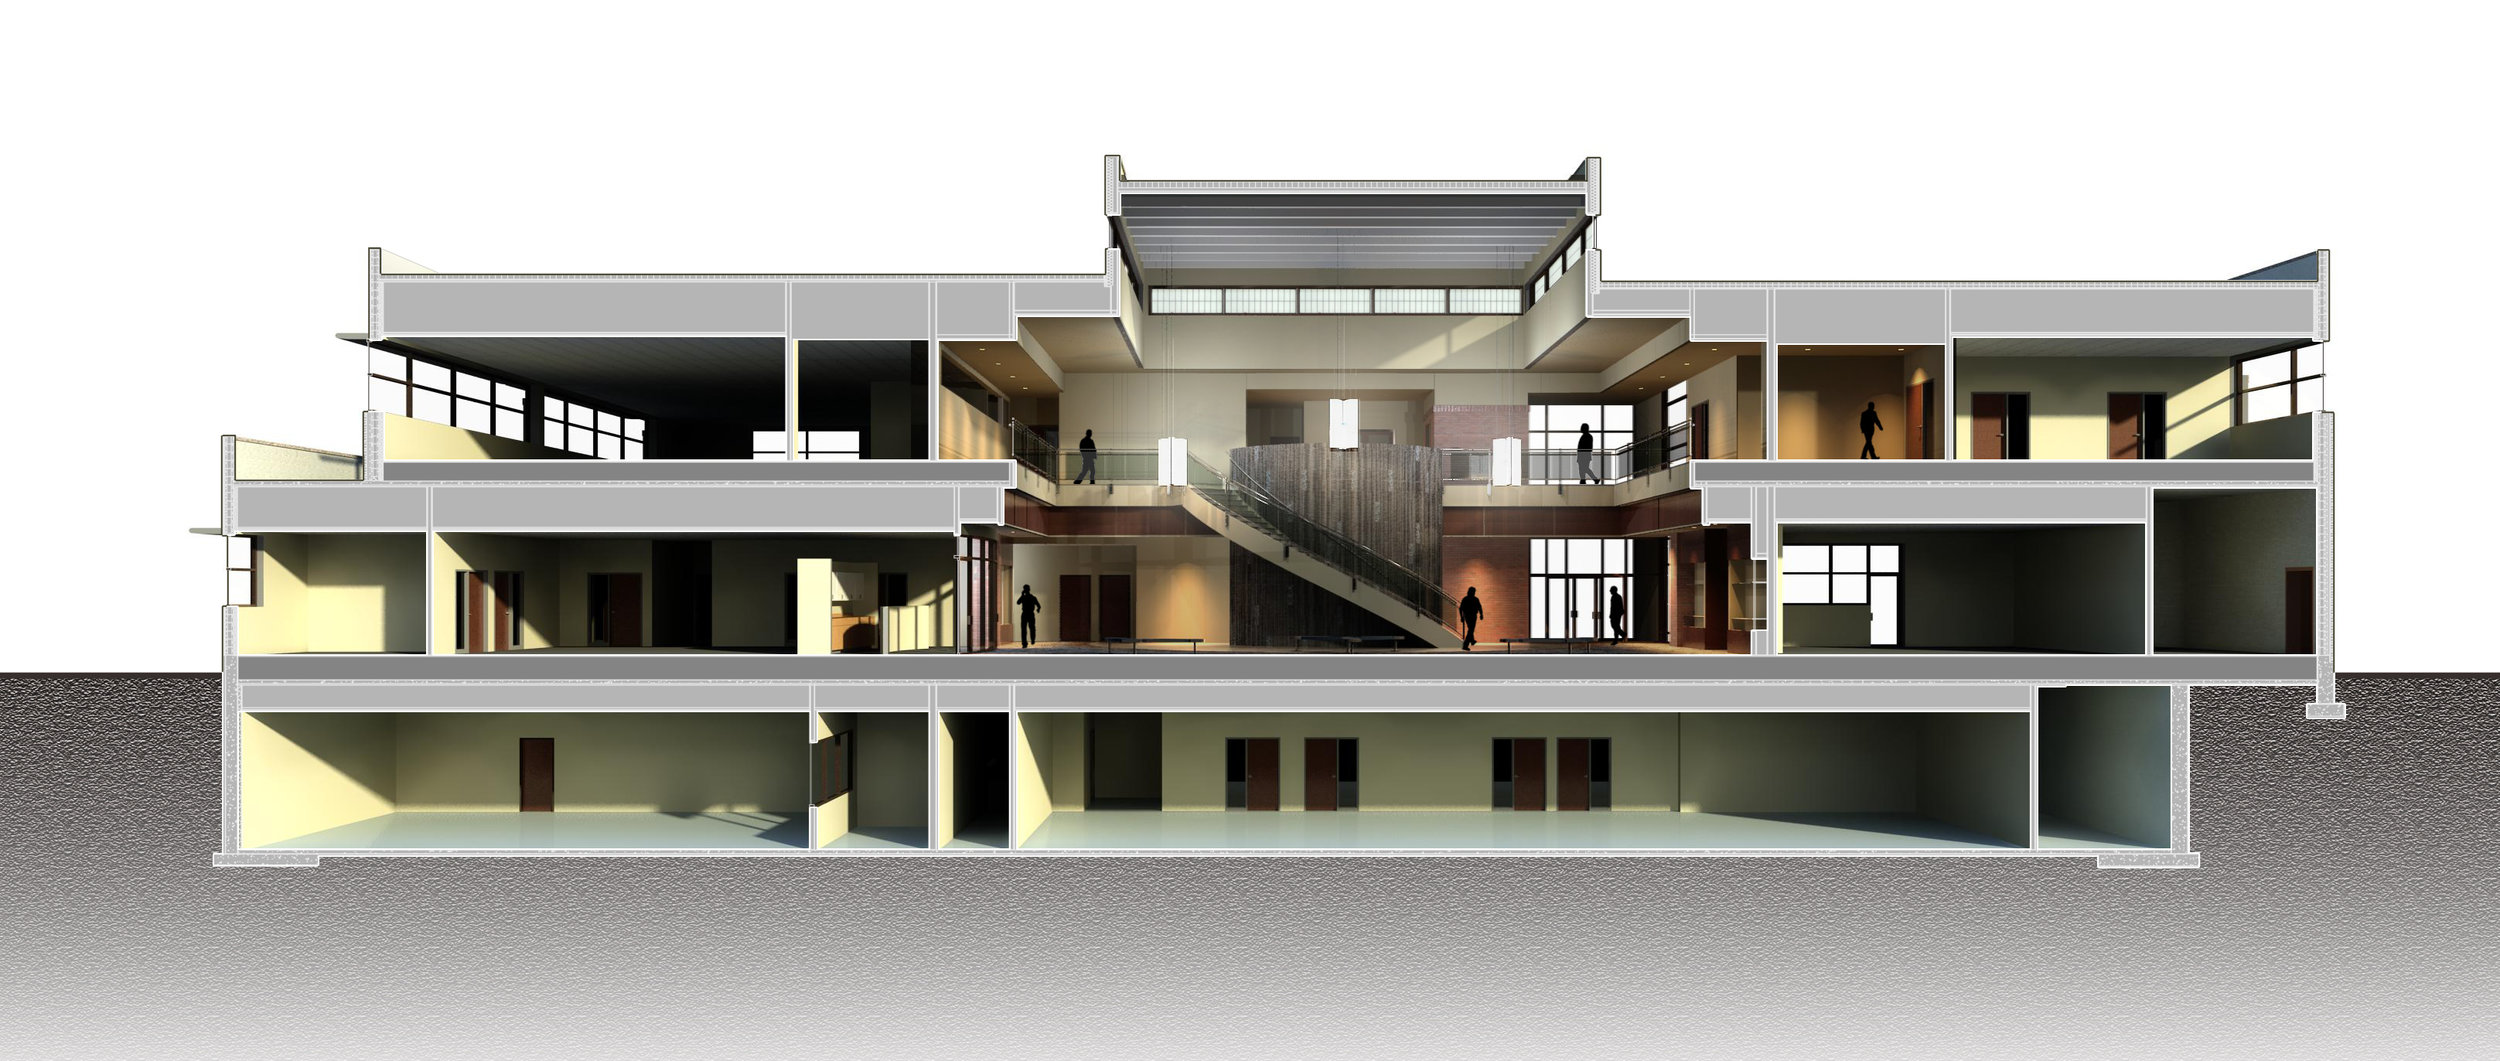 FINAL - 3D View - East West Section Perspective.jpg